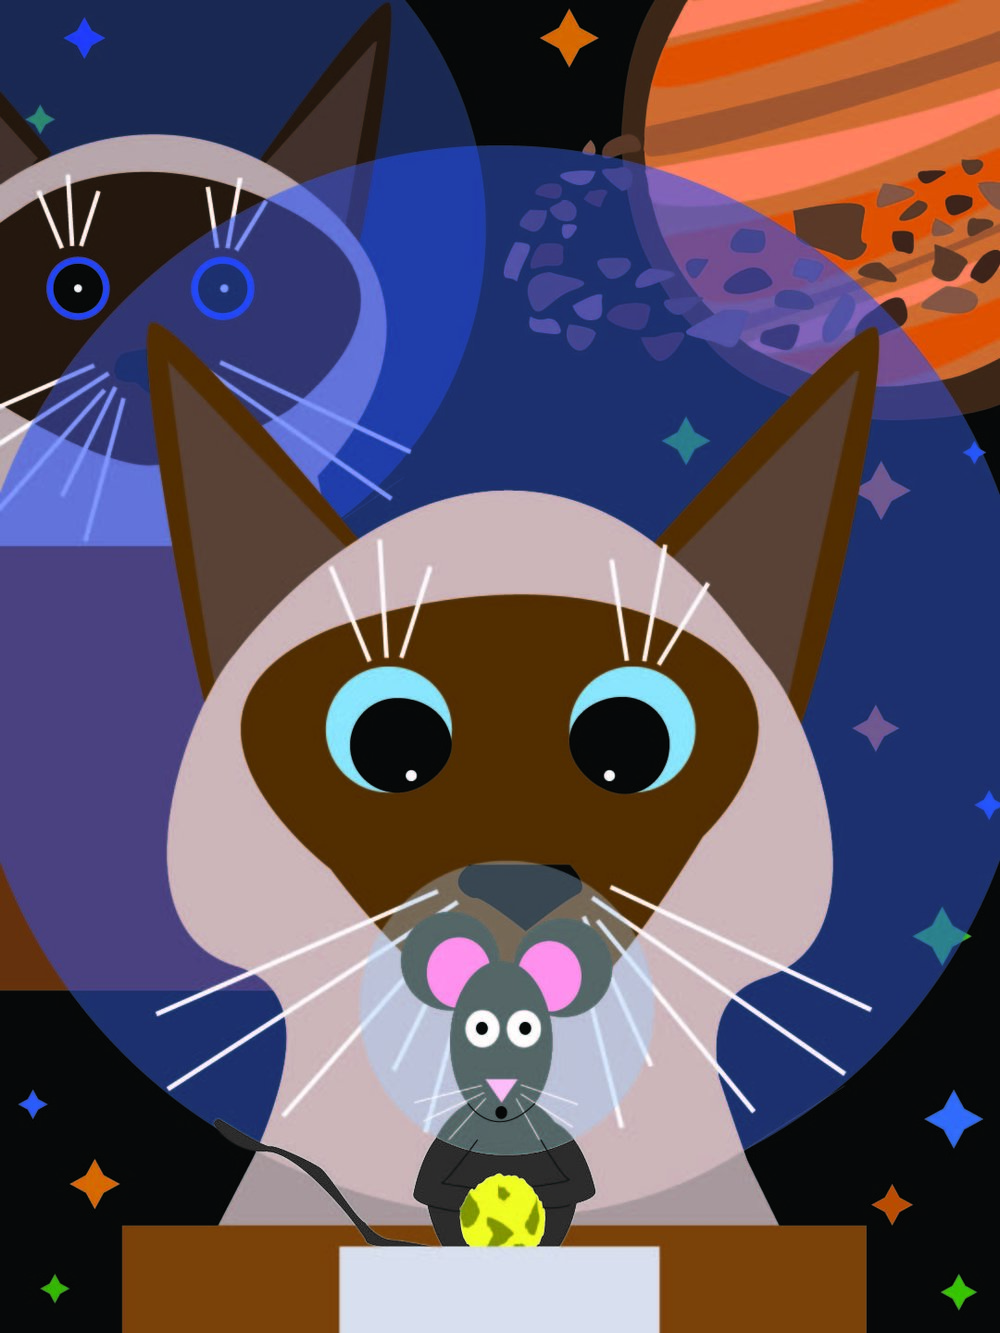 Chantal-Benitez-Cats-Space-Illustration